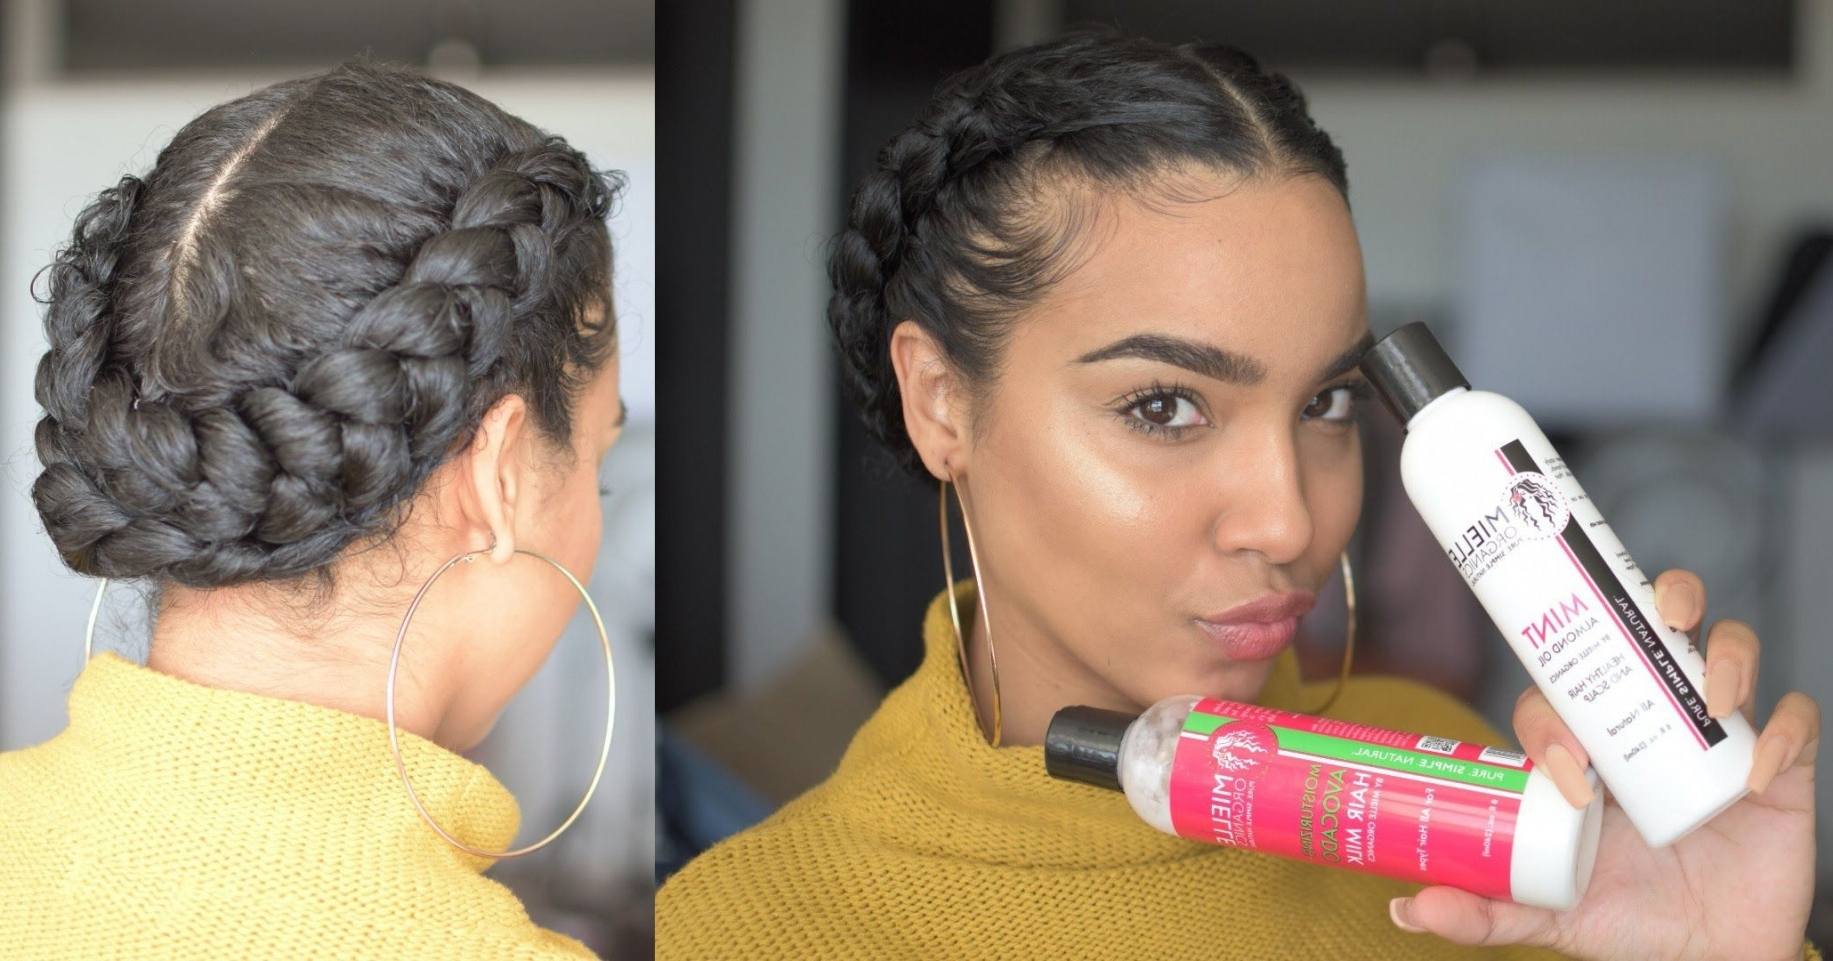 Shocking Quick Braided Hairstyles For Natural Hair Elegant And Easy Regarding Most Recent Braided Hairstyles With Real Hair (View 14 of 15)